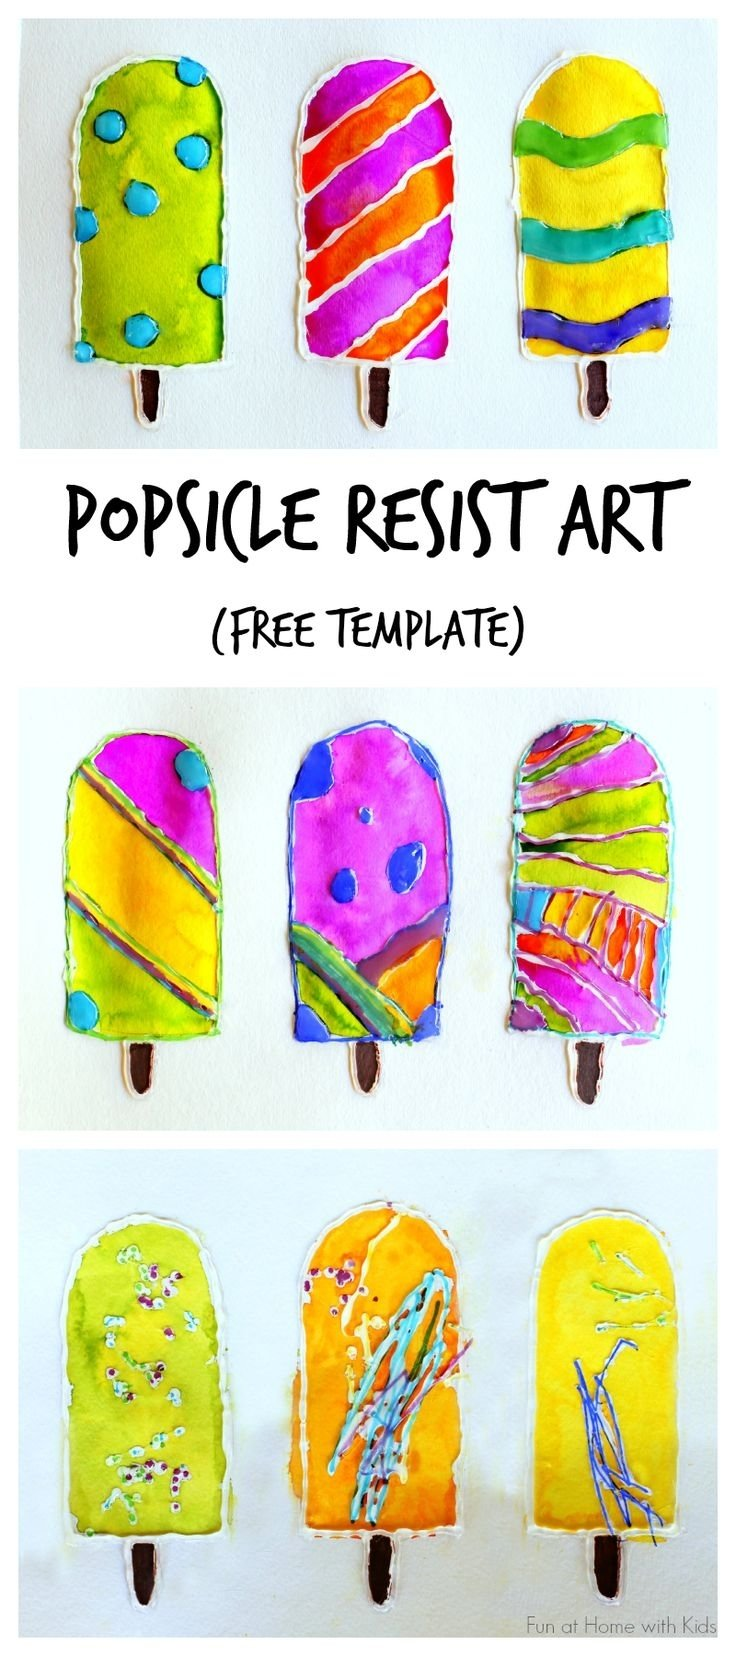 10 Lovable Arts And Crafts Ideas For Summer 109 best spring summer art projects for kids images on pinterest 1 2020